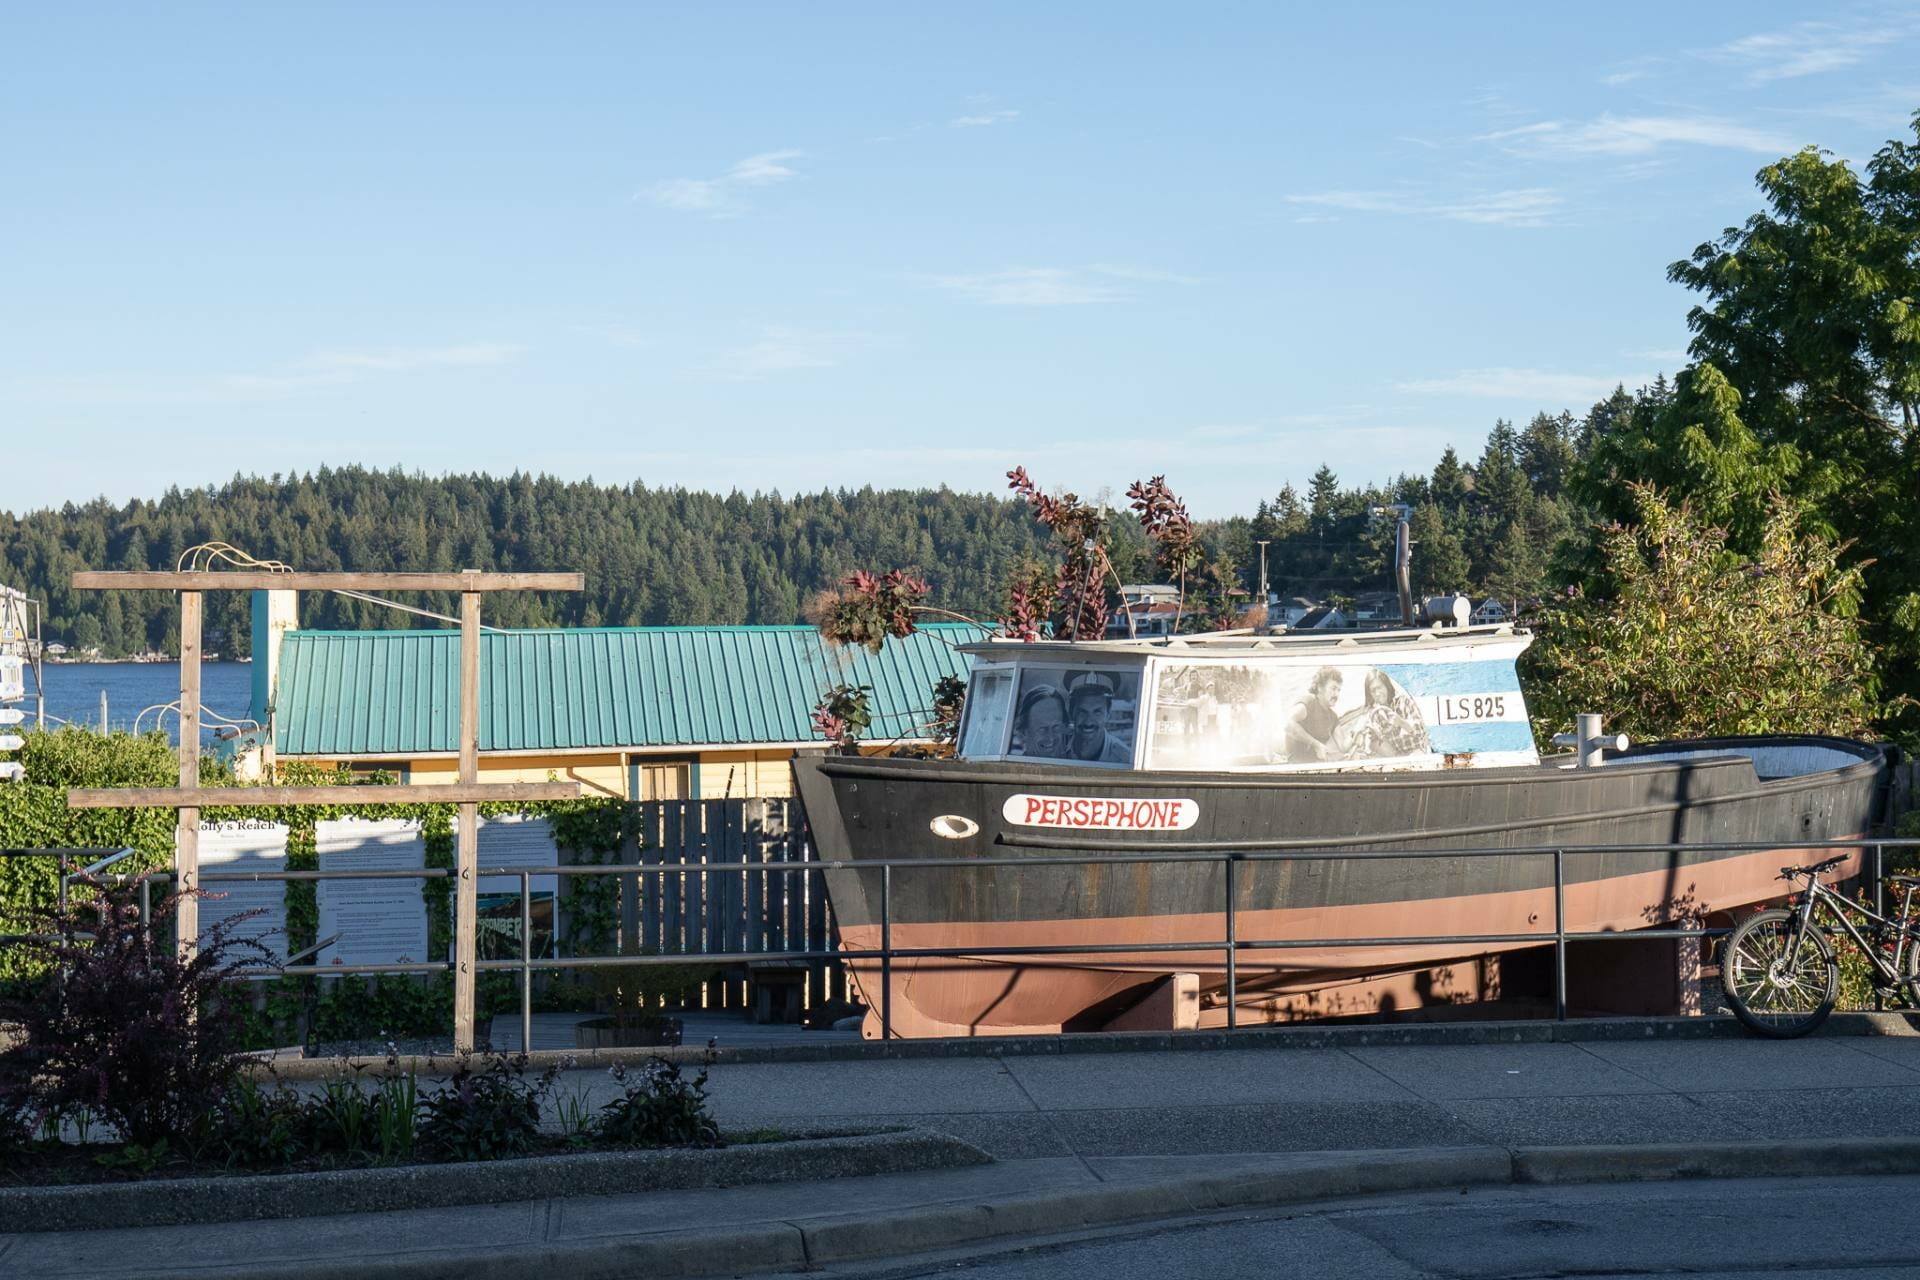 Seeing the Persephone is one of the best things to do in Gibsons